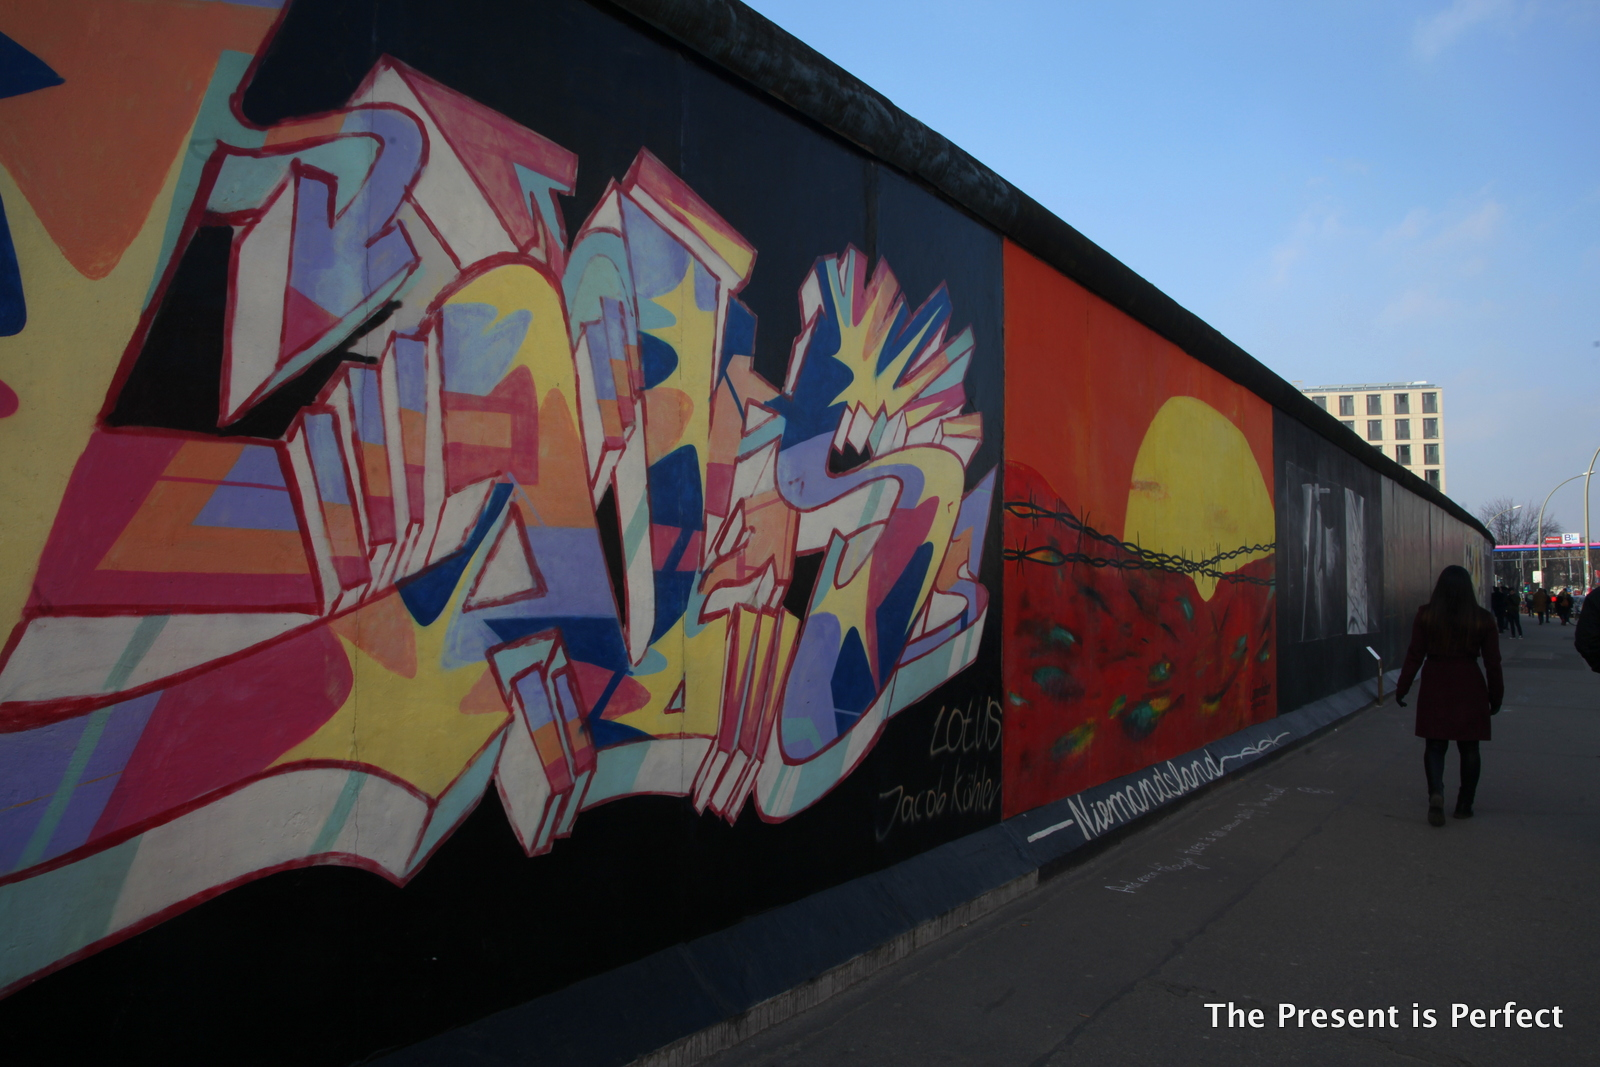 The Berlin Wall So That We Would Not Forget How The Freedom Feels